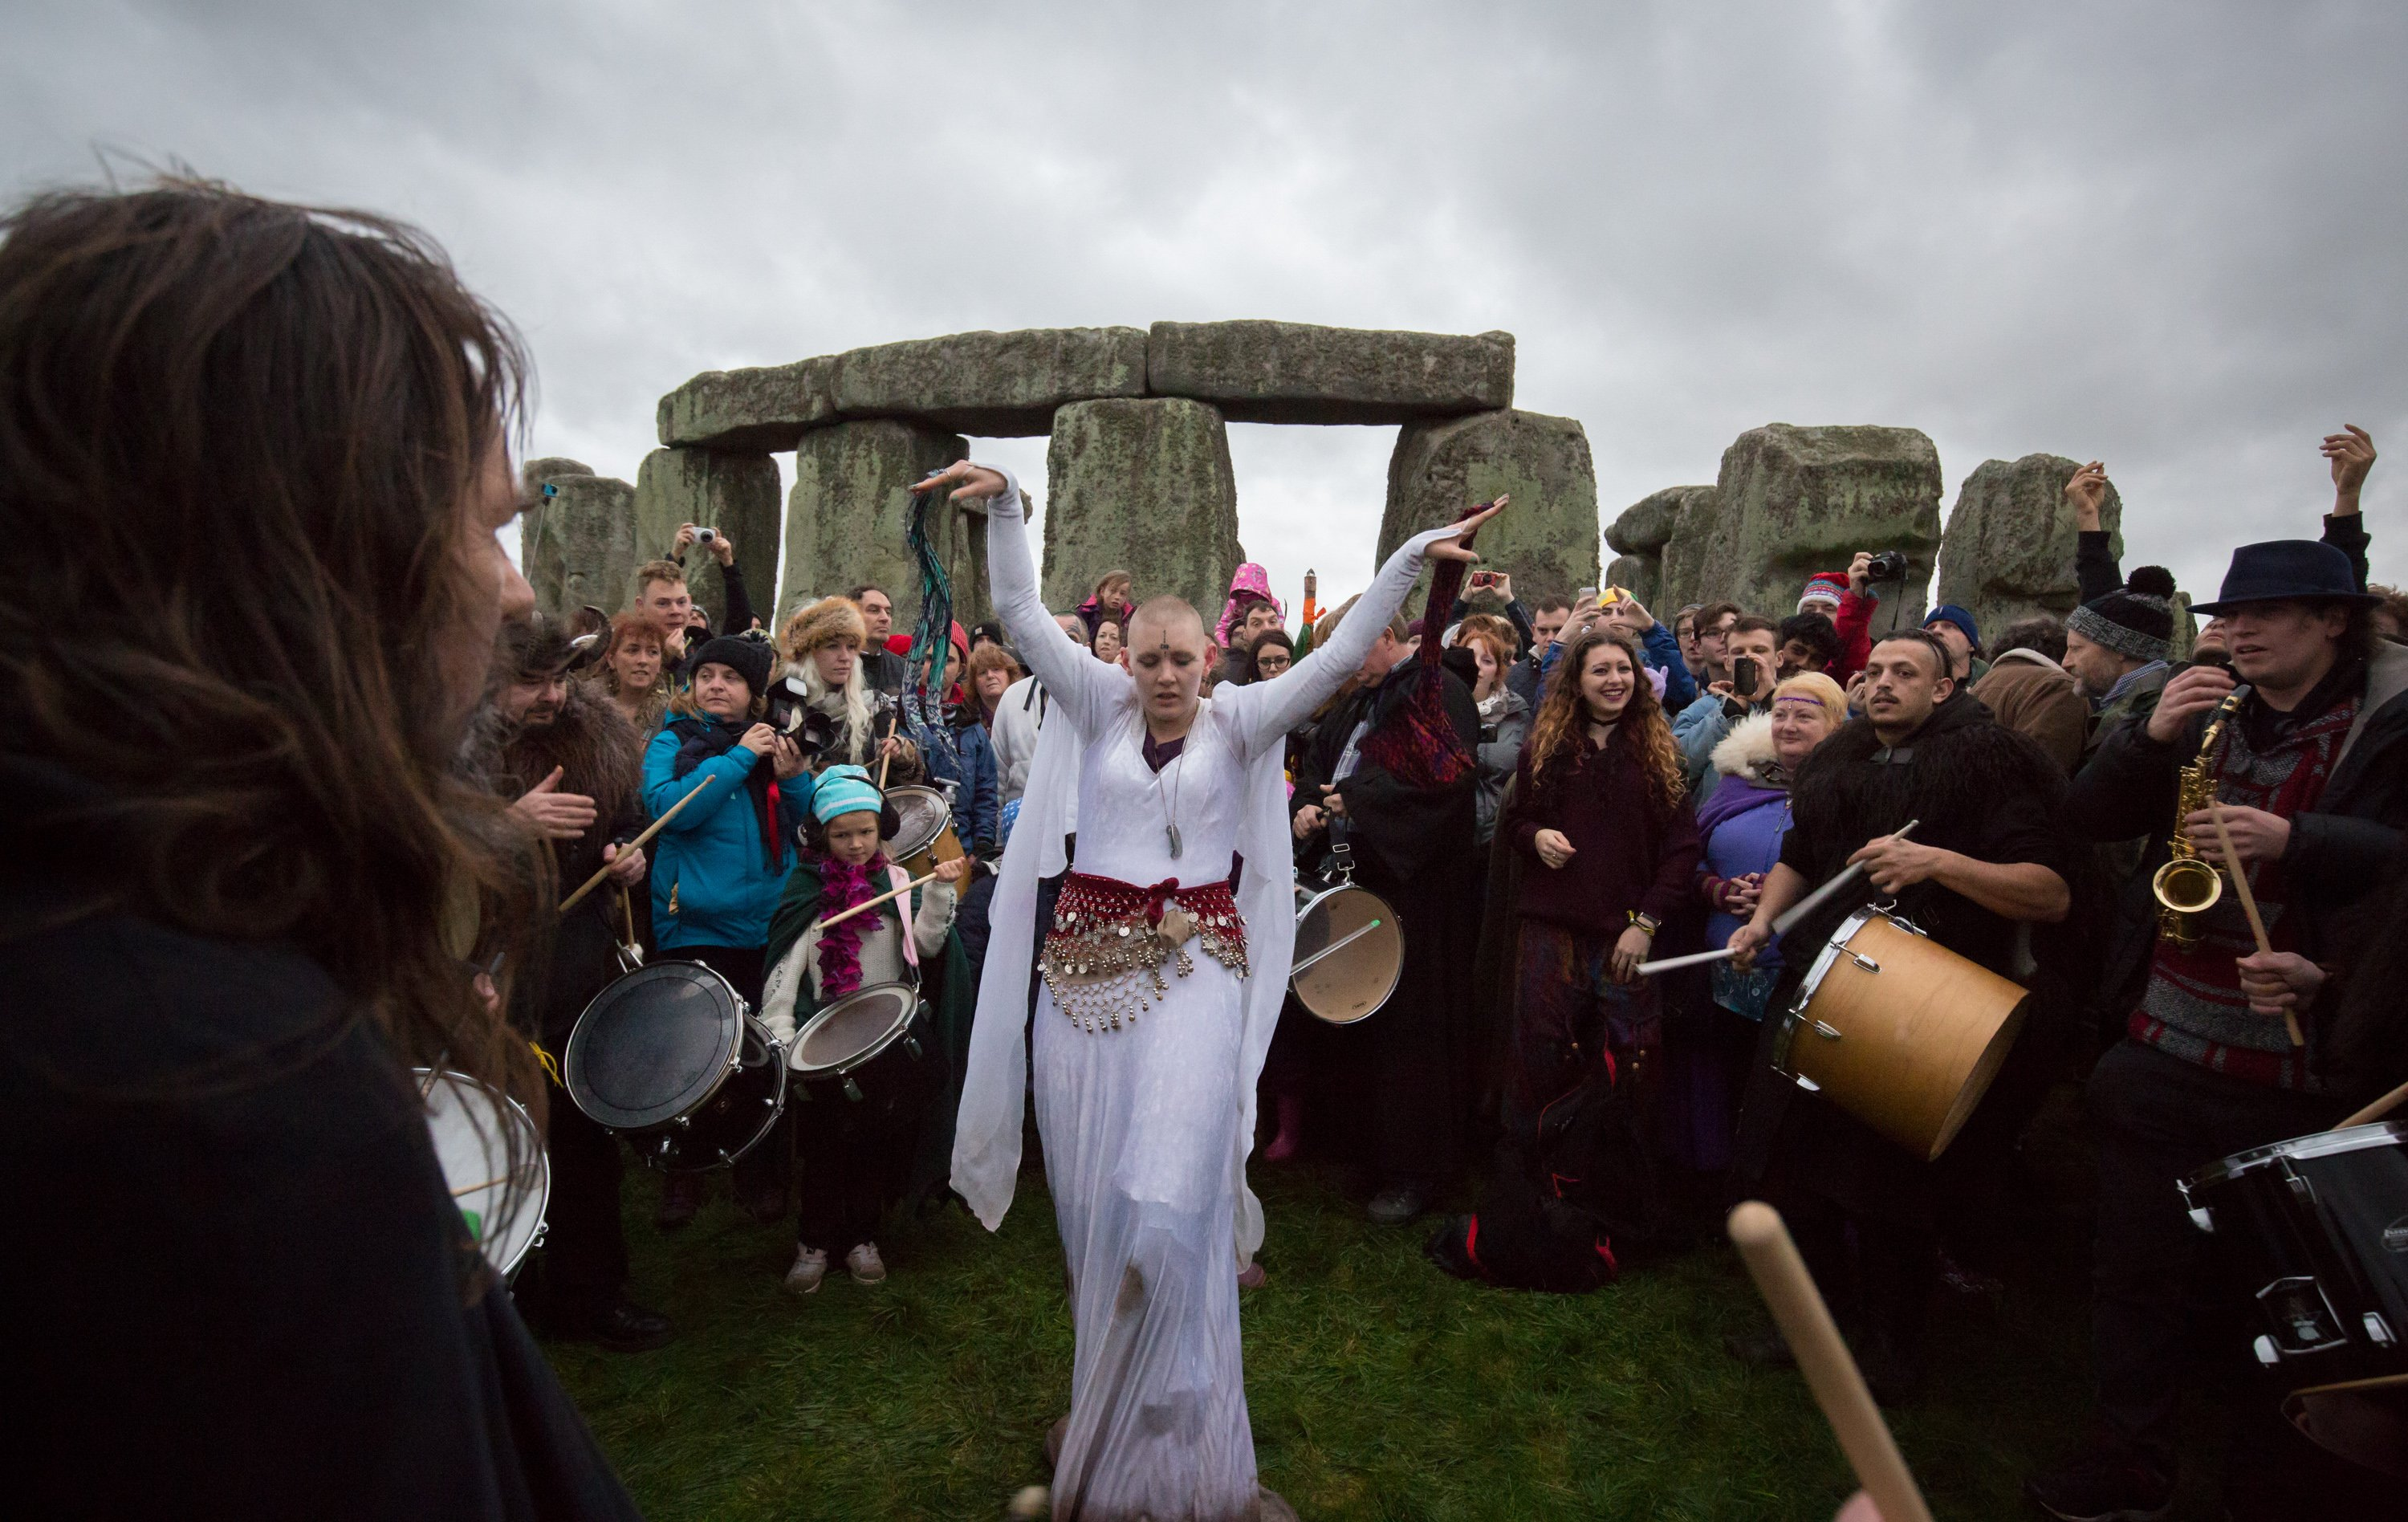 Druids, pagans and revellers gather at Stonehenge on Dec. 22, 2015 in Wiltshire, England.